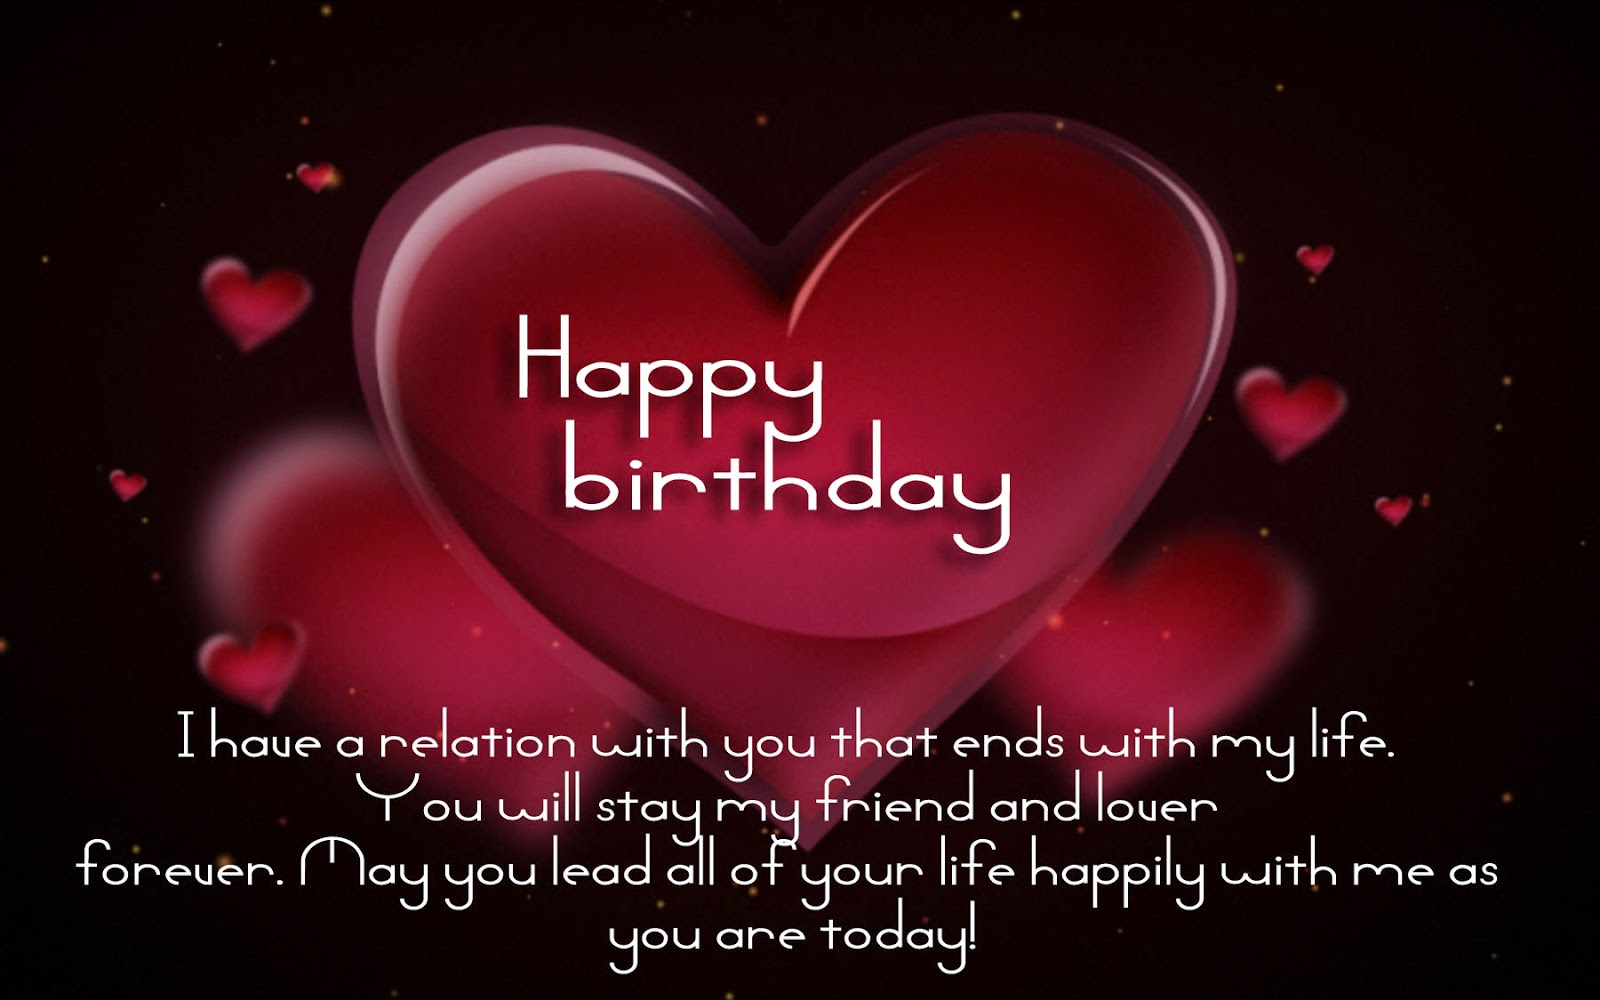 happy birthday love picture messages ; 06955361d1729a2fdef99ef8a0673ab5